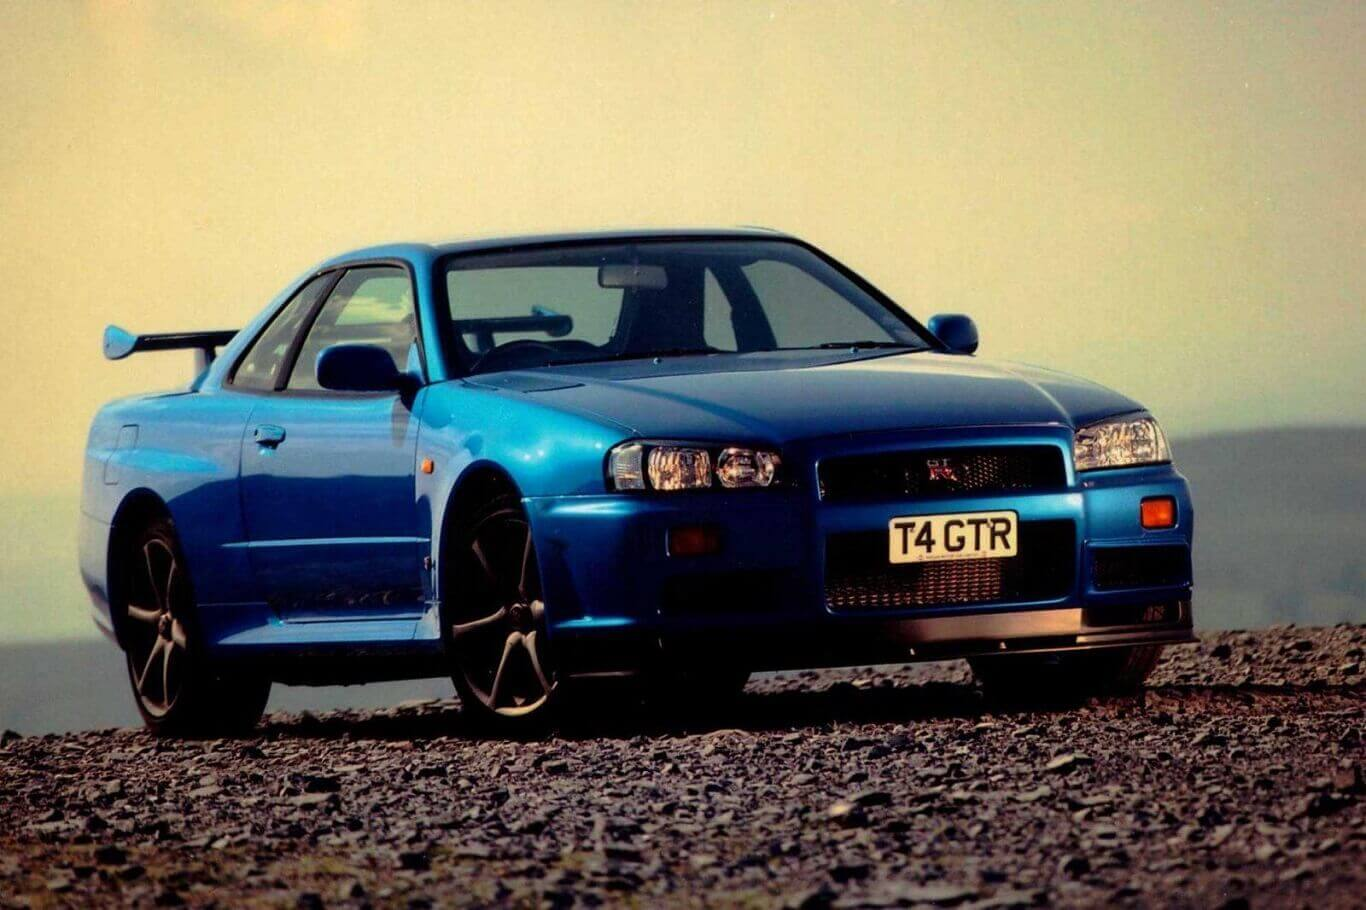 why are Nissan skylines illegal in the U.S